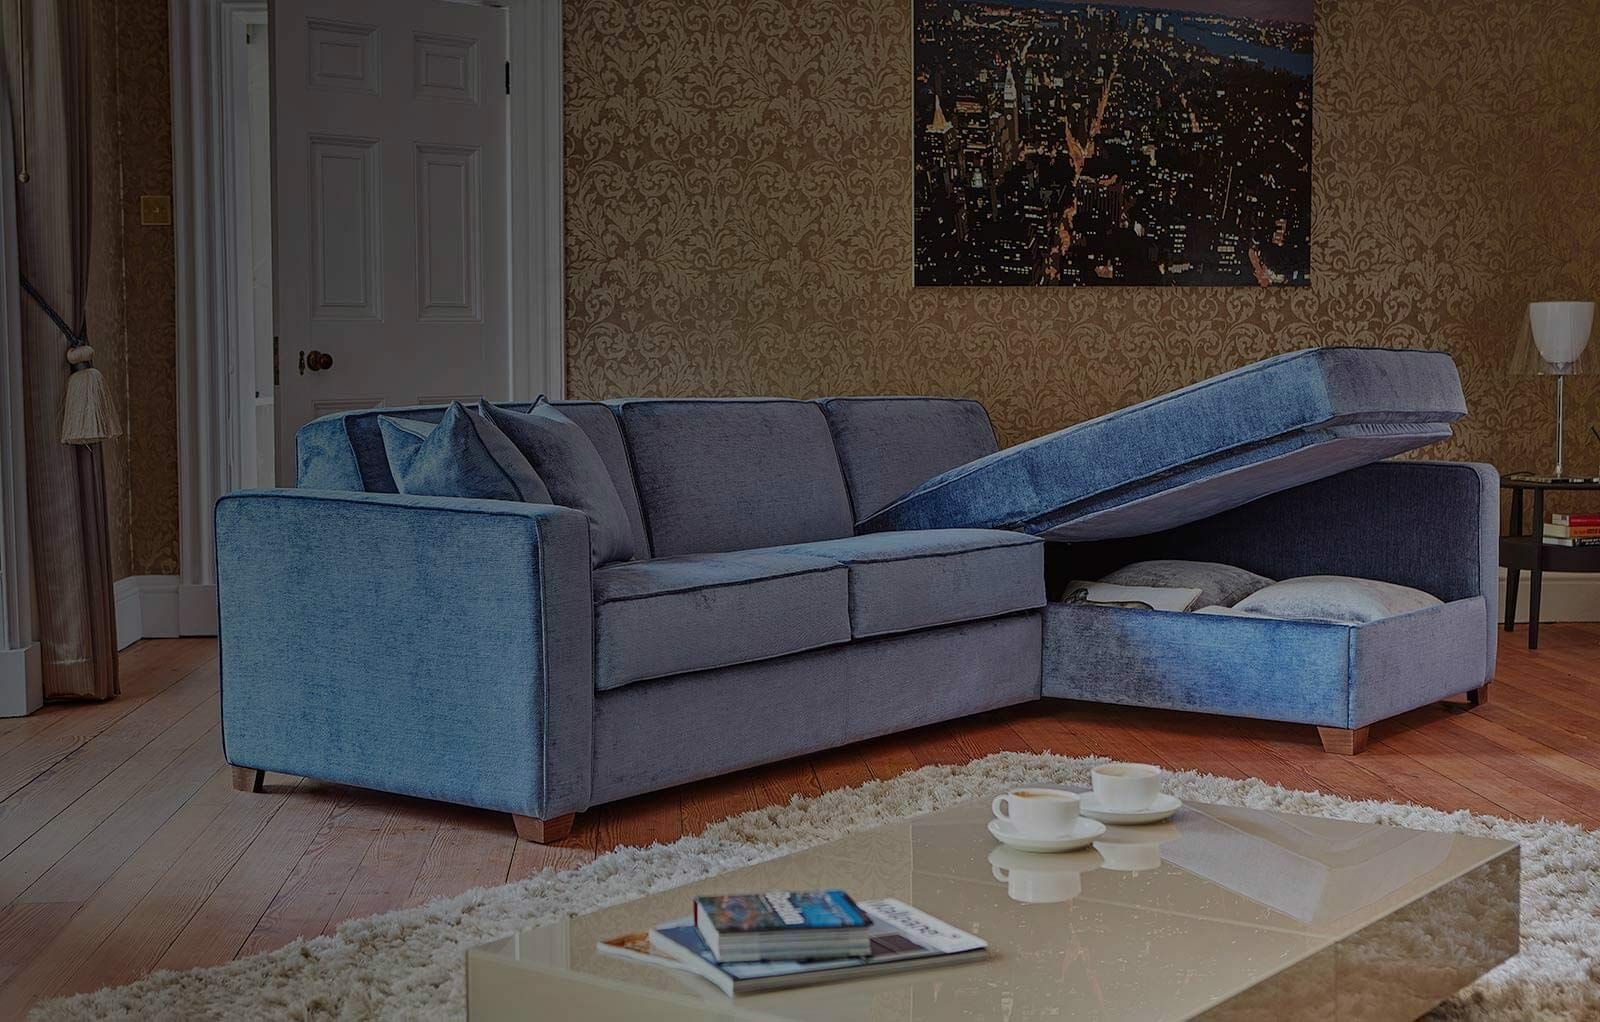 Sofa Beds for Every Day Use Comfort Day and Night Sofa